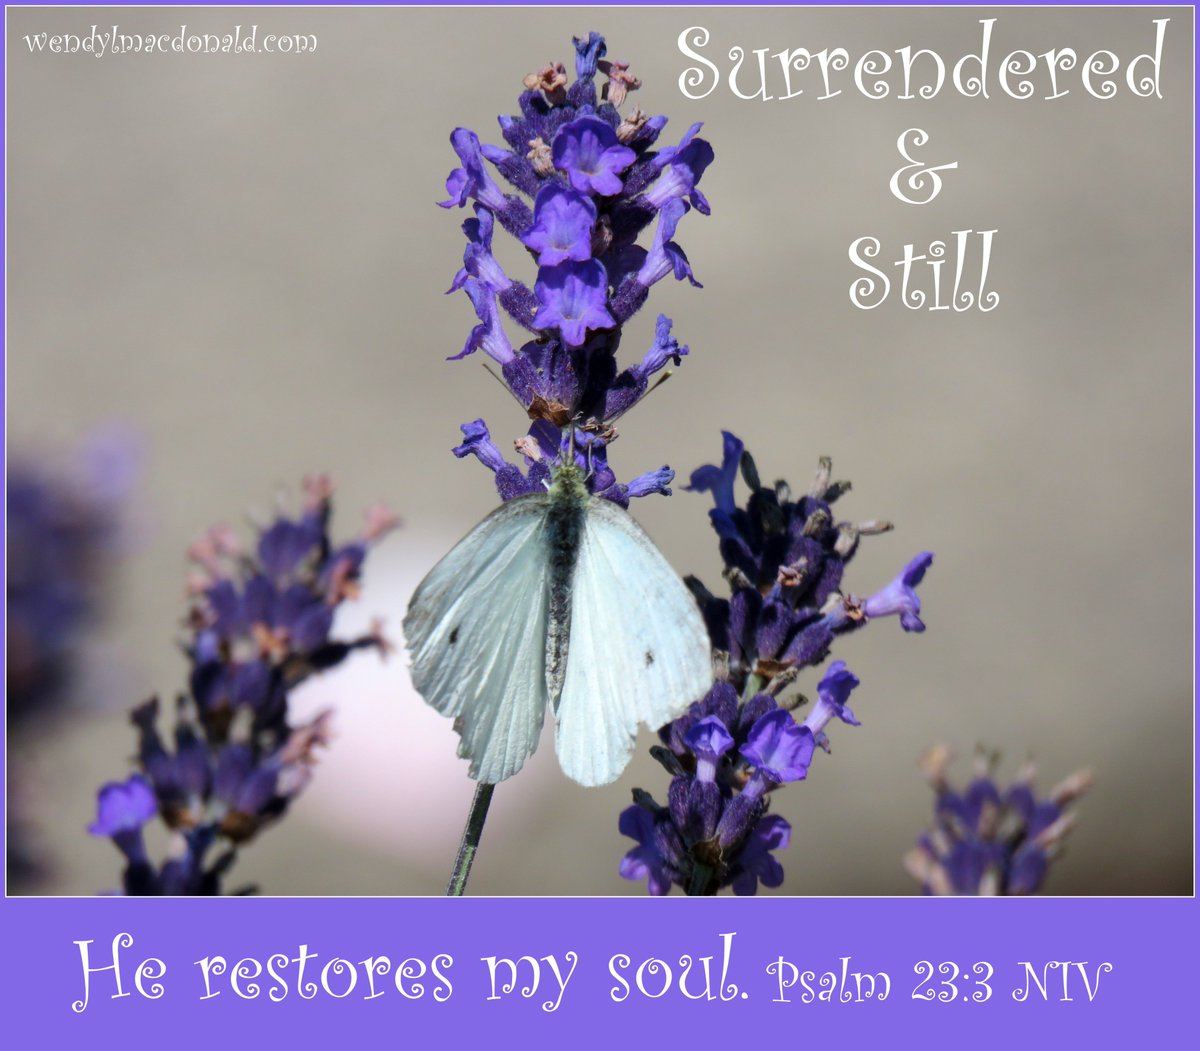 God restores my soul When I am still And surrendered To His perfect will God restores my soul When I give Him praise And relinquish fear To His Holy Name. ~ wlm #mondaythoughts #poetry<br>http://pic.twitter.com/QLrwzTDetS